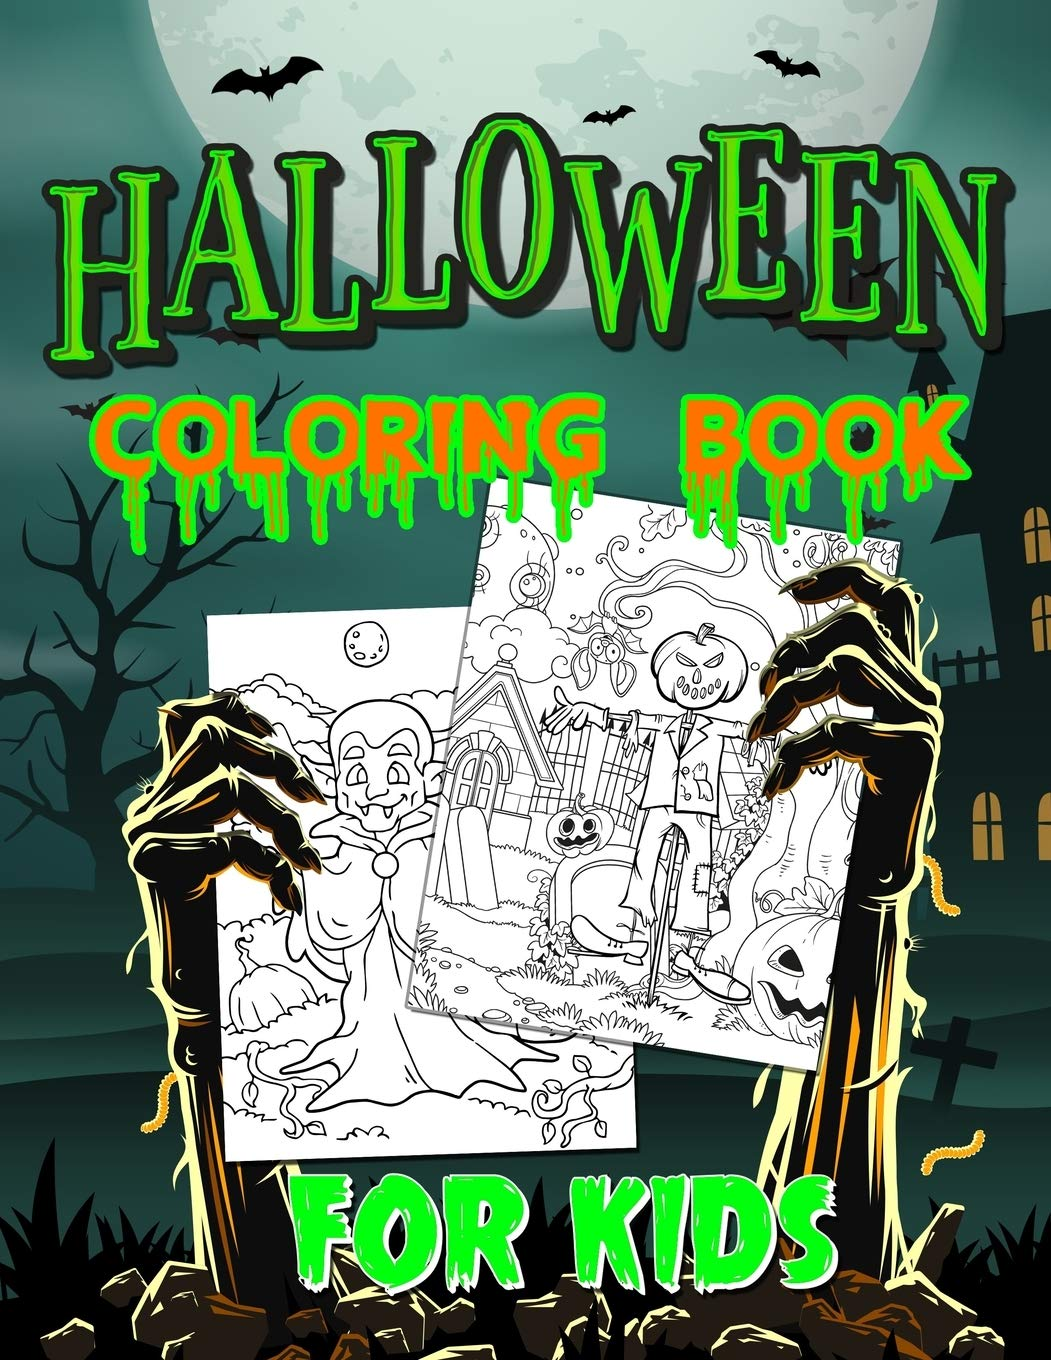 Halloween Coloring Book For Kids Spooky Coloring Book For Kids Scary Halloween Monsters Witches And Ghouls Coloring Pages For Kids To Color Hours Of Fun Guaranteed Heaven Bujo 9781698382784 Amazon Com Books